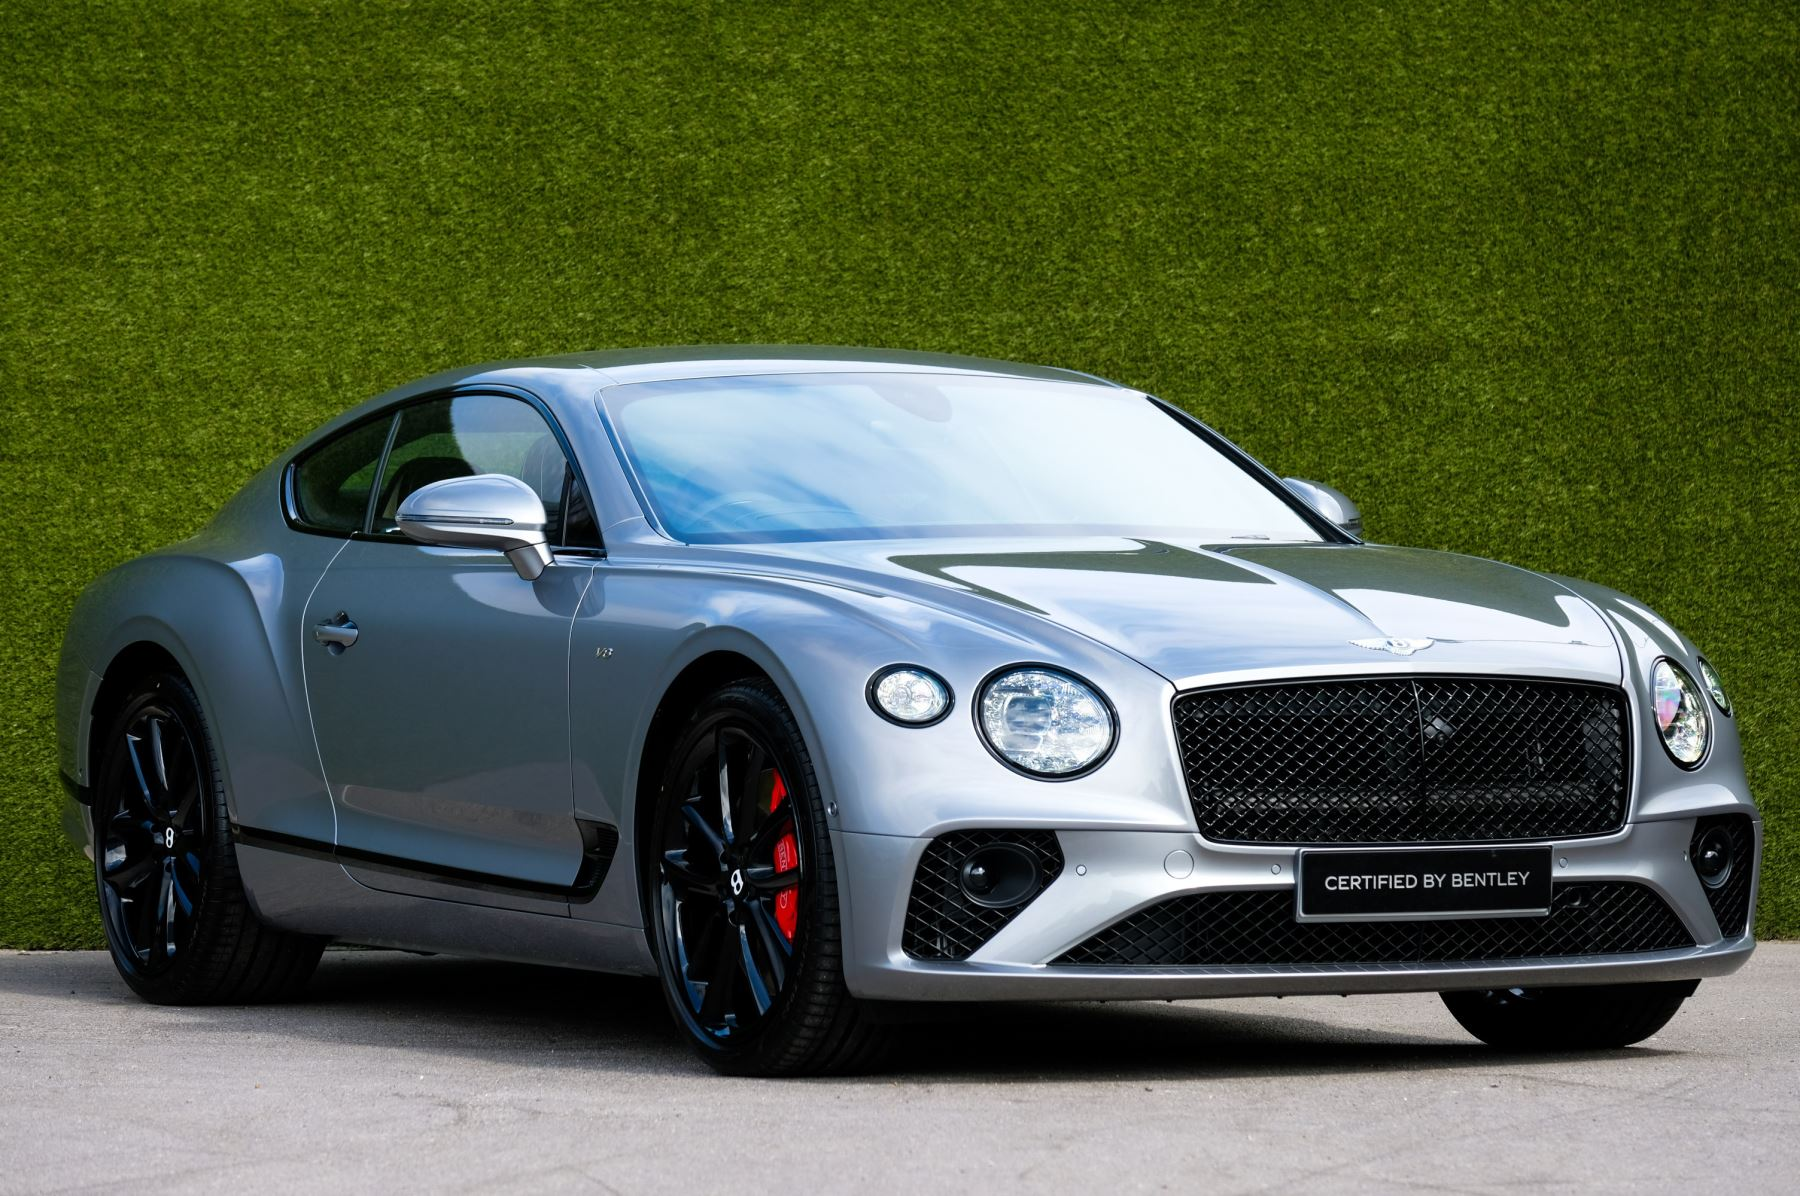 Bentley Continental GT 4.0 V8 2dr Automatic Coupe (2021)